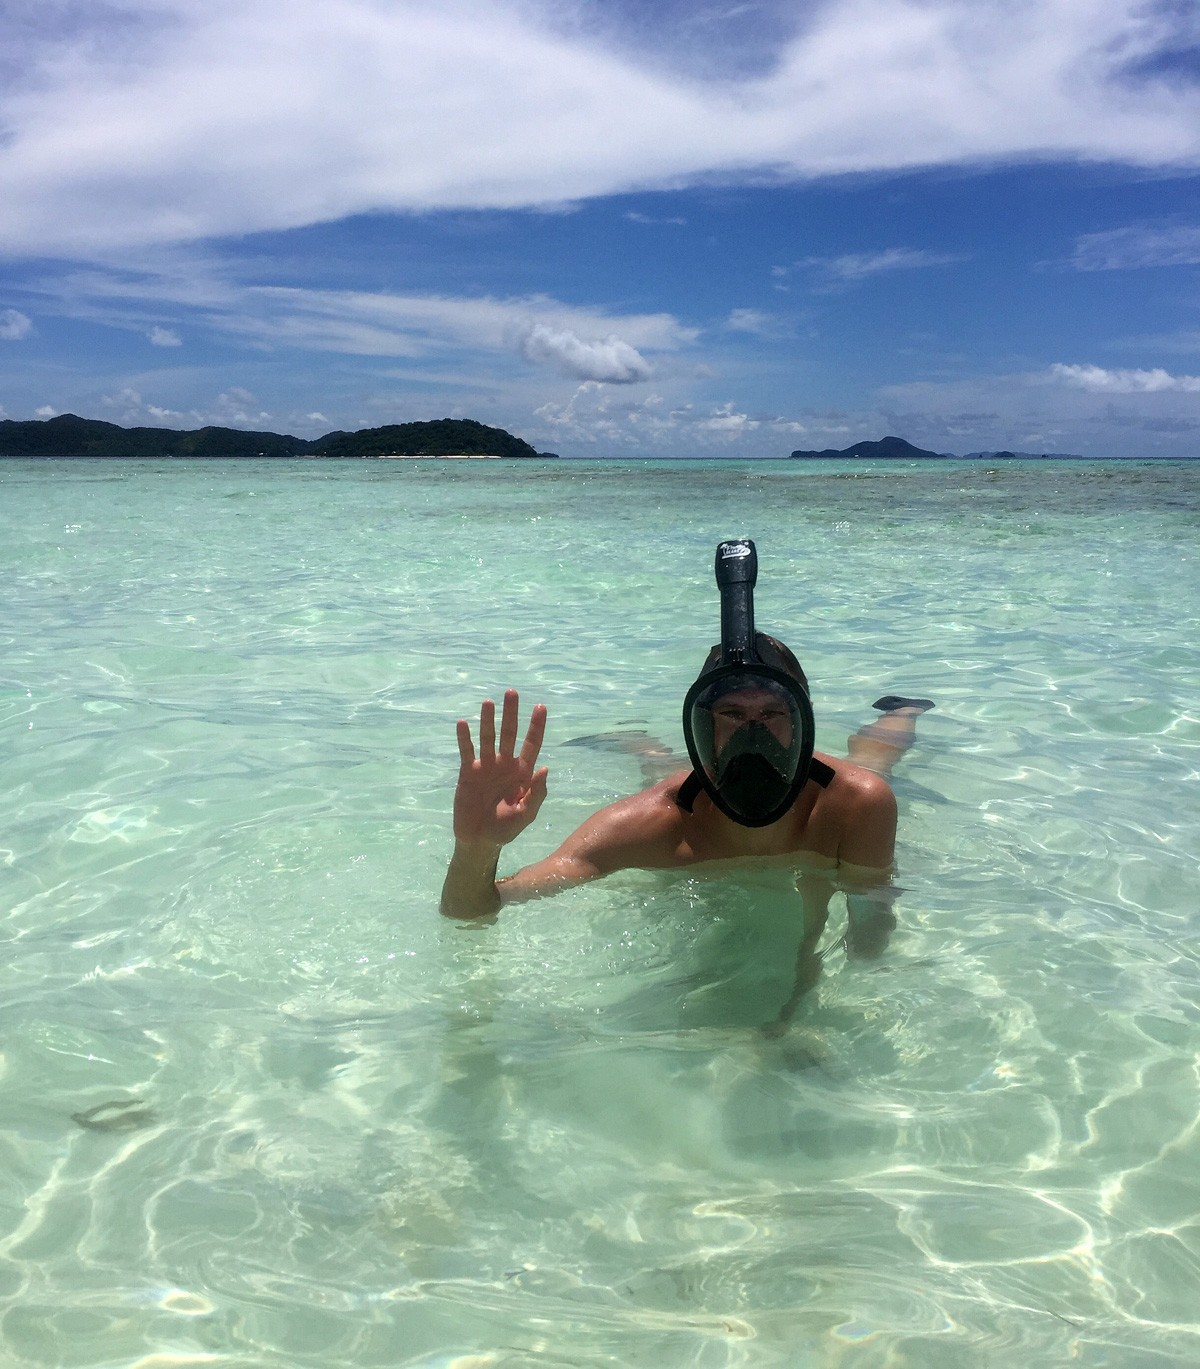 Malcapuya island snorkeling - Andrei from Travelblogstories